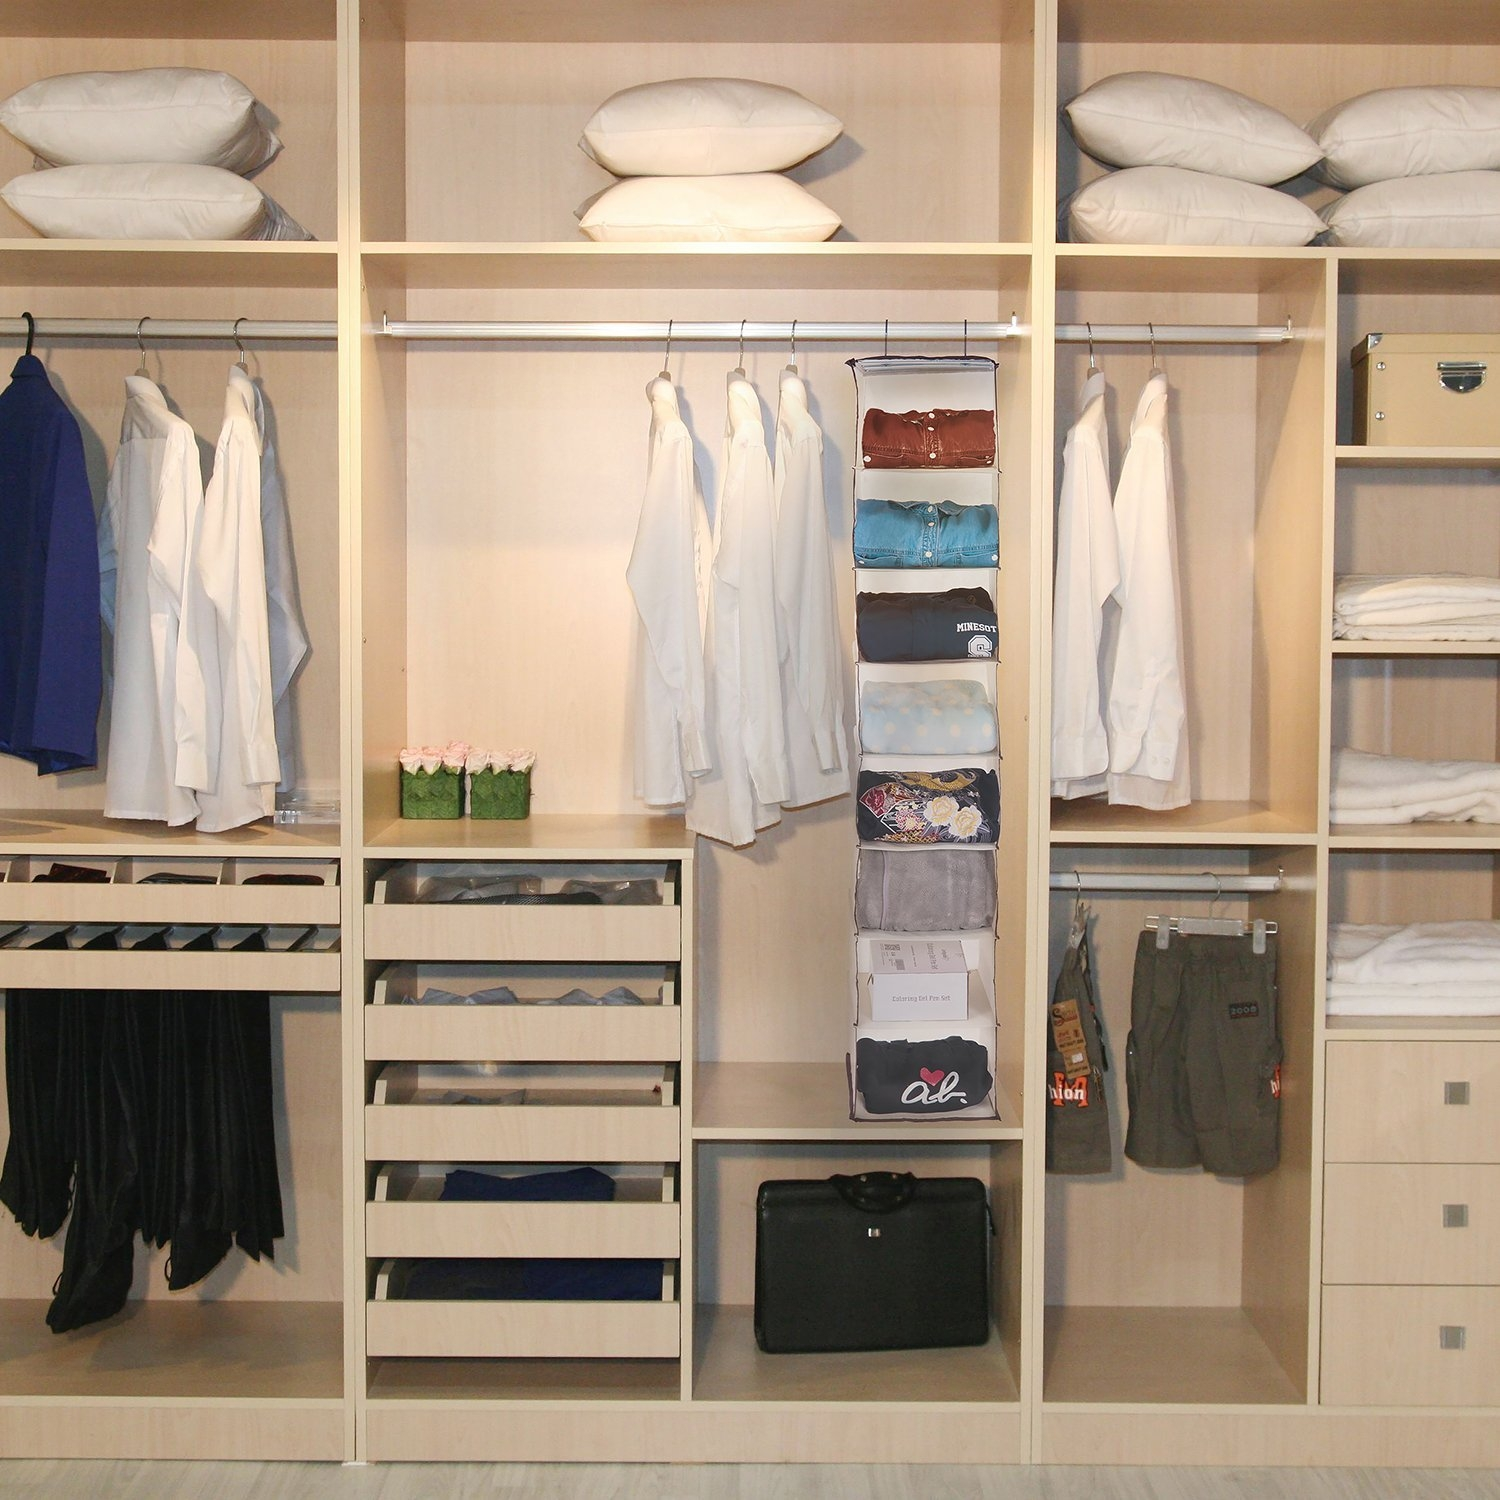 Amazon Hanging Closet Organizer Maidmax 8 Shelf Non Woven Within Hanging Wardrobe Shelves (Image 8 of 25)